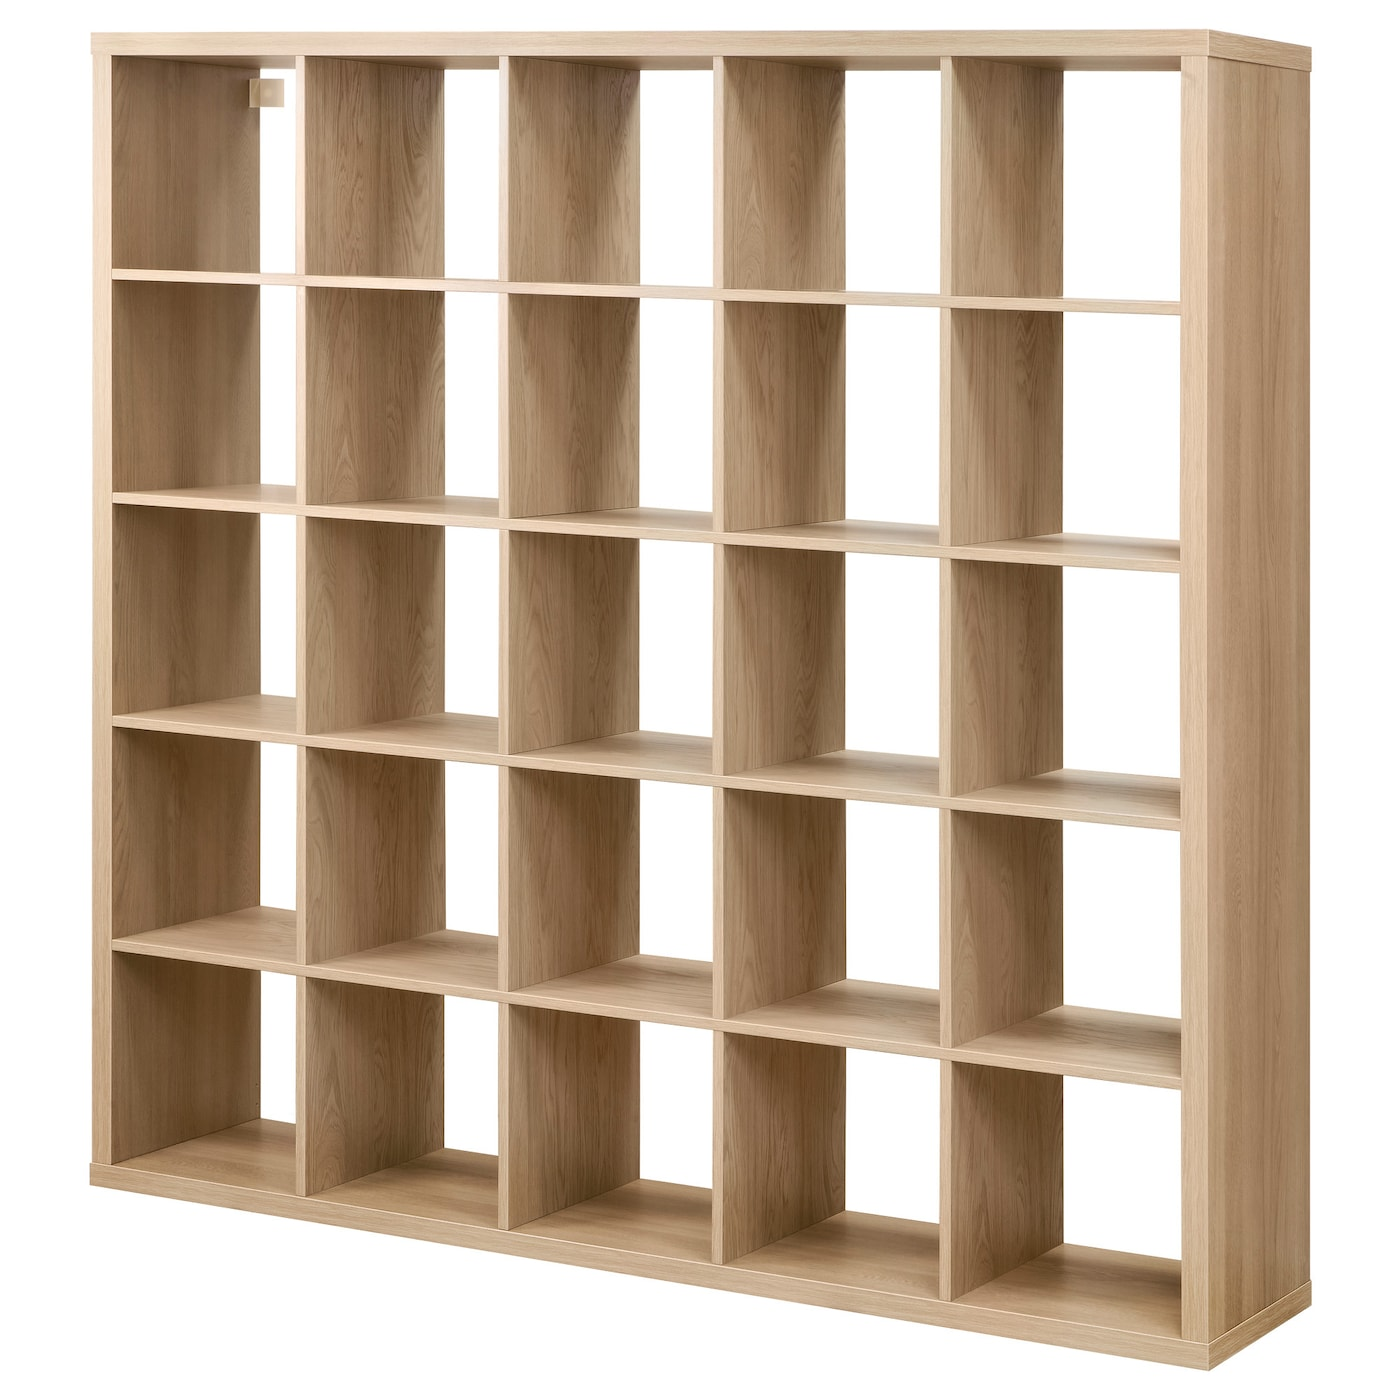 bookcase organizer level itm furniture cubes bins ebay shelves home cabinet shelf storage